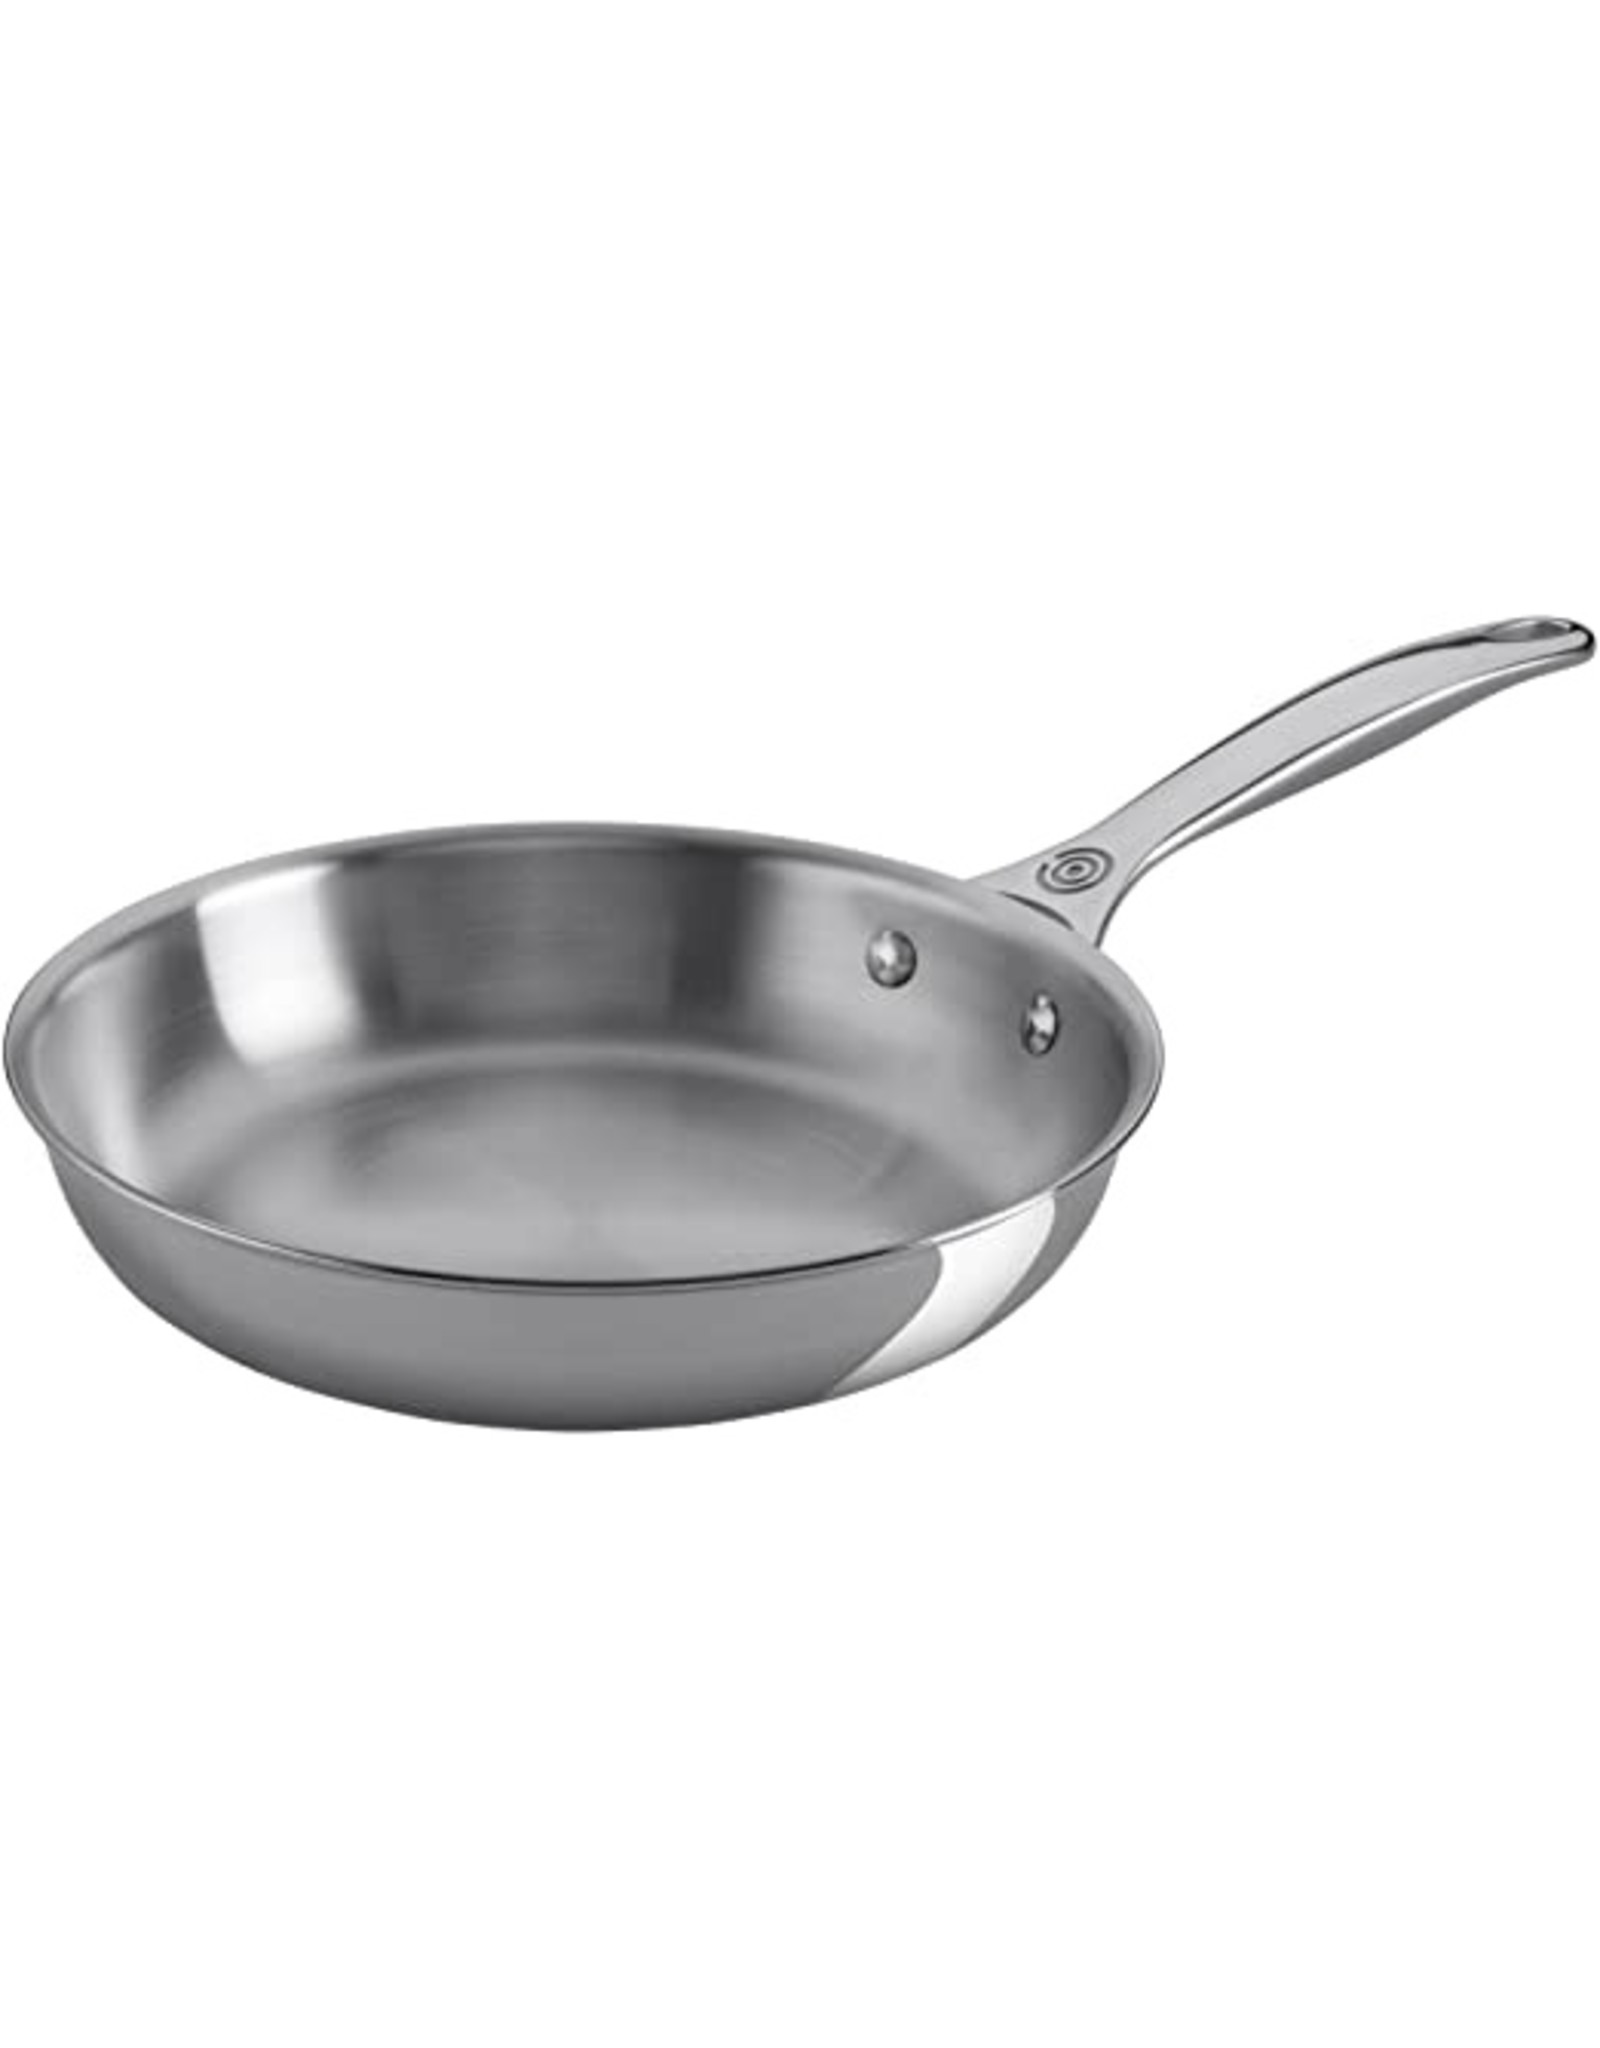 "Le Creuset LeC 12"" Stainless Steel Fry Pan"